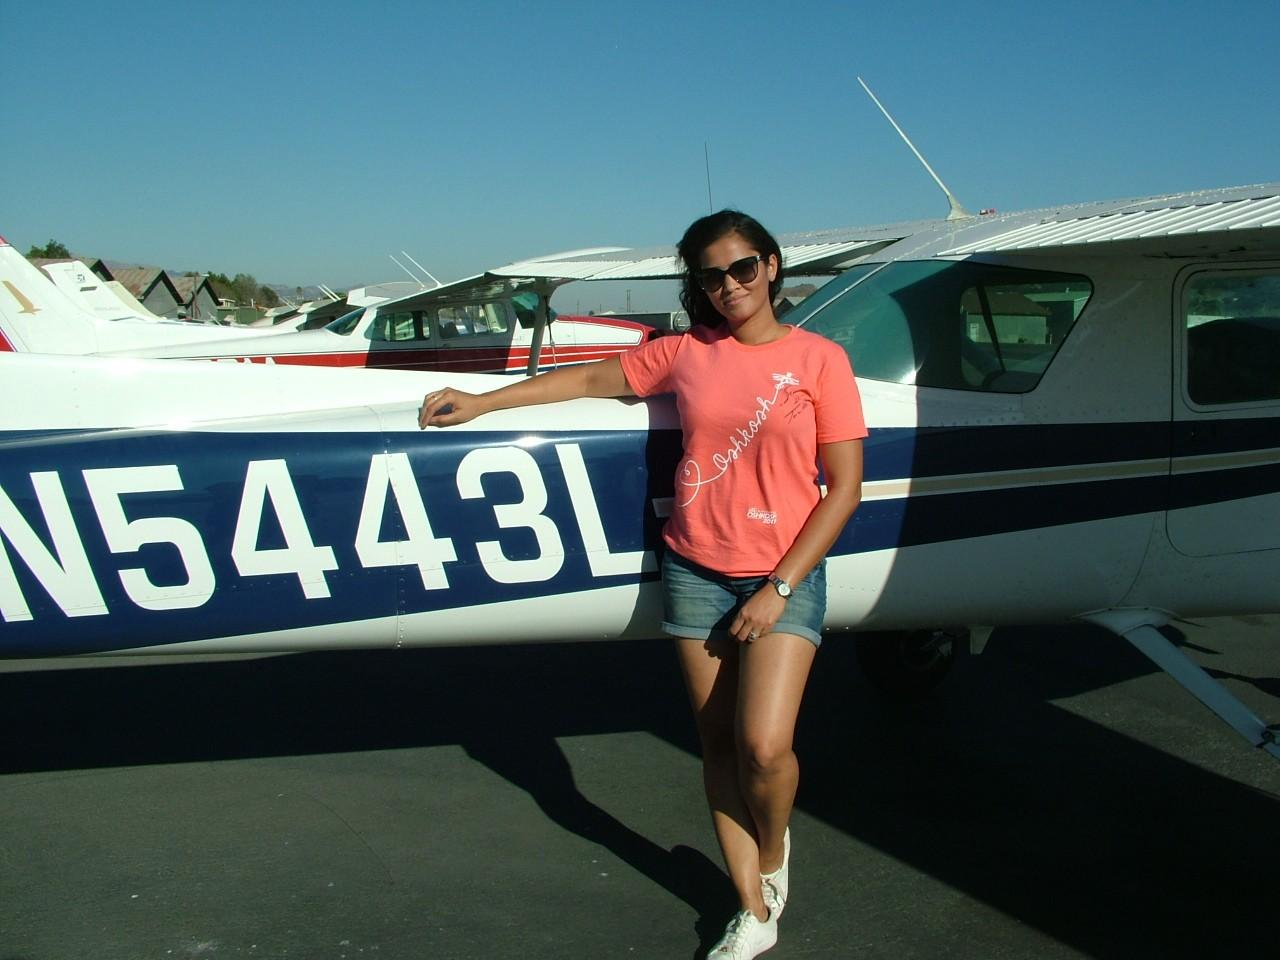 First Solo - Ruth Charlesworth!